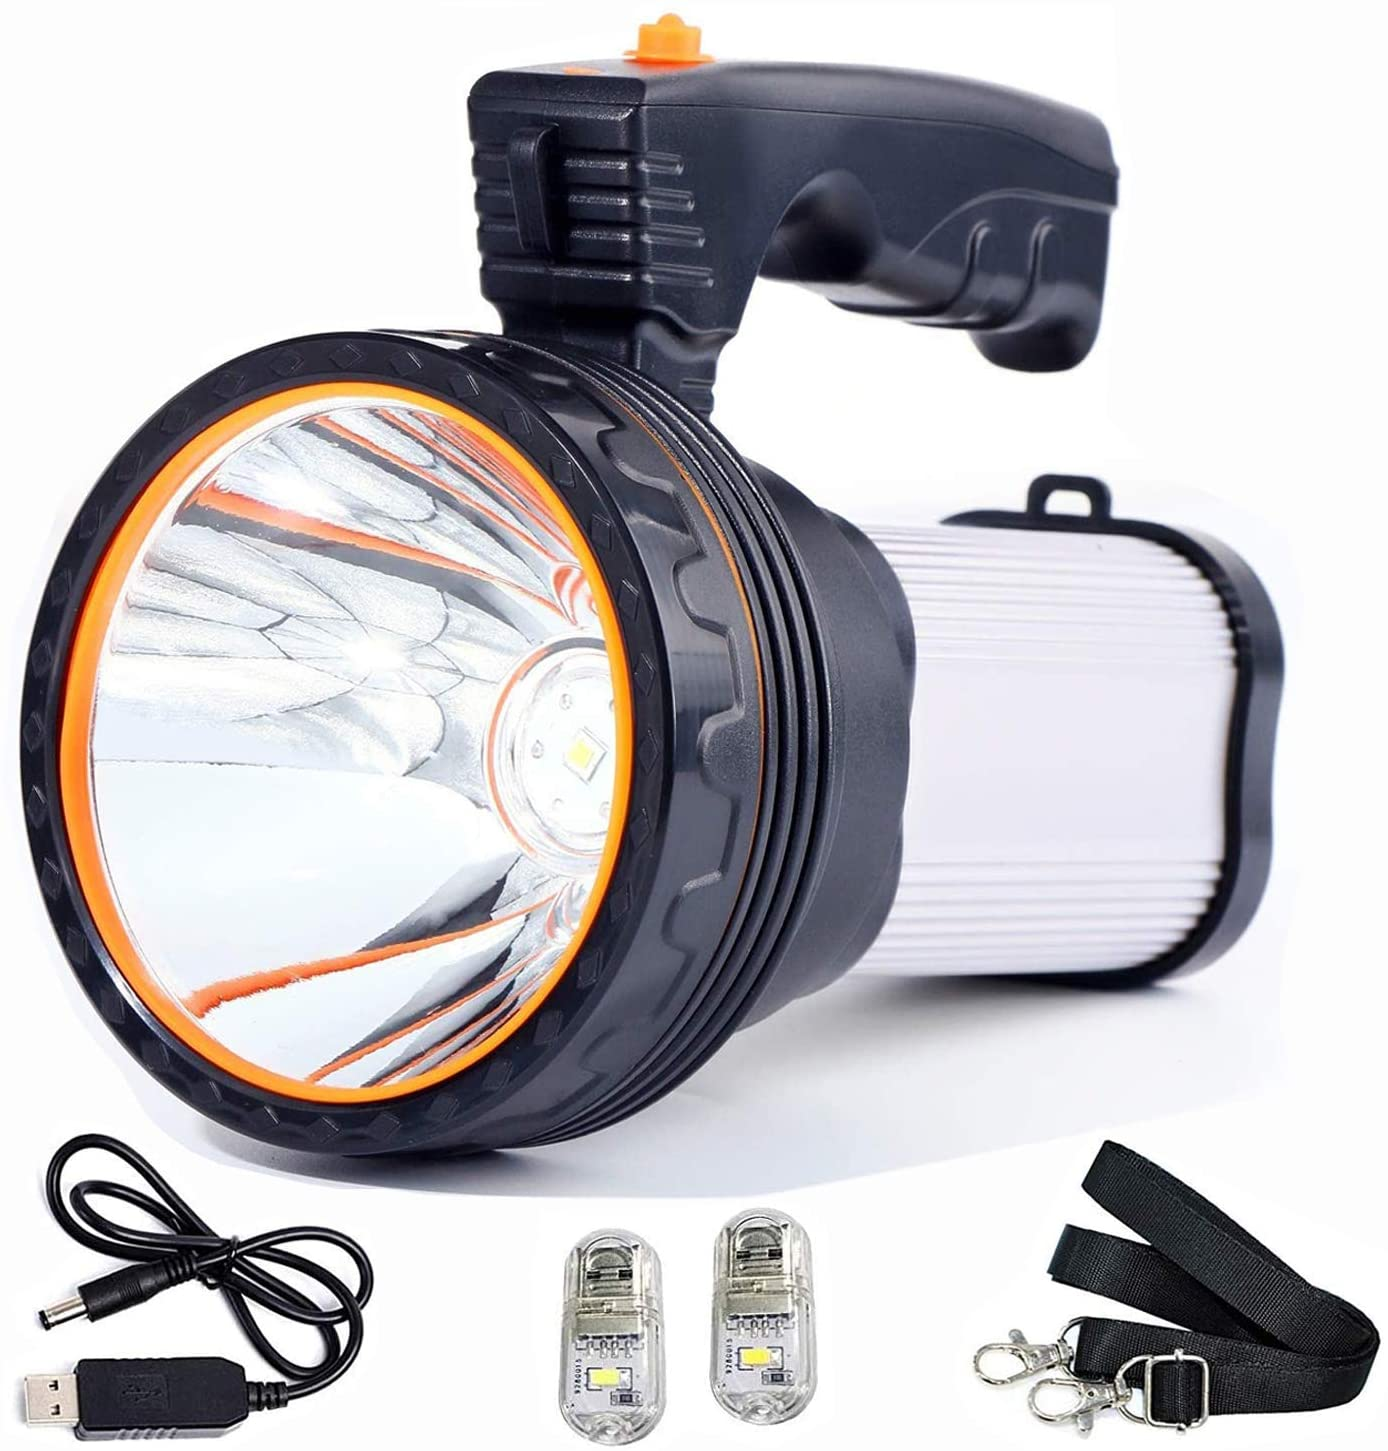 Rechargeable Spot light,Super Bright Handheld Flashlight,LED Torch Lantern High Power IPX4 Waterproof Spotlight Portable Searchlight for Outdoor Camping Adventure Emergency (Silver)